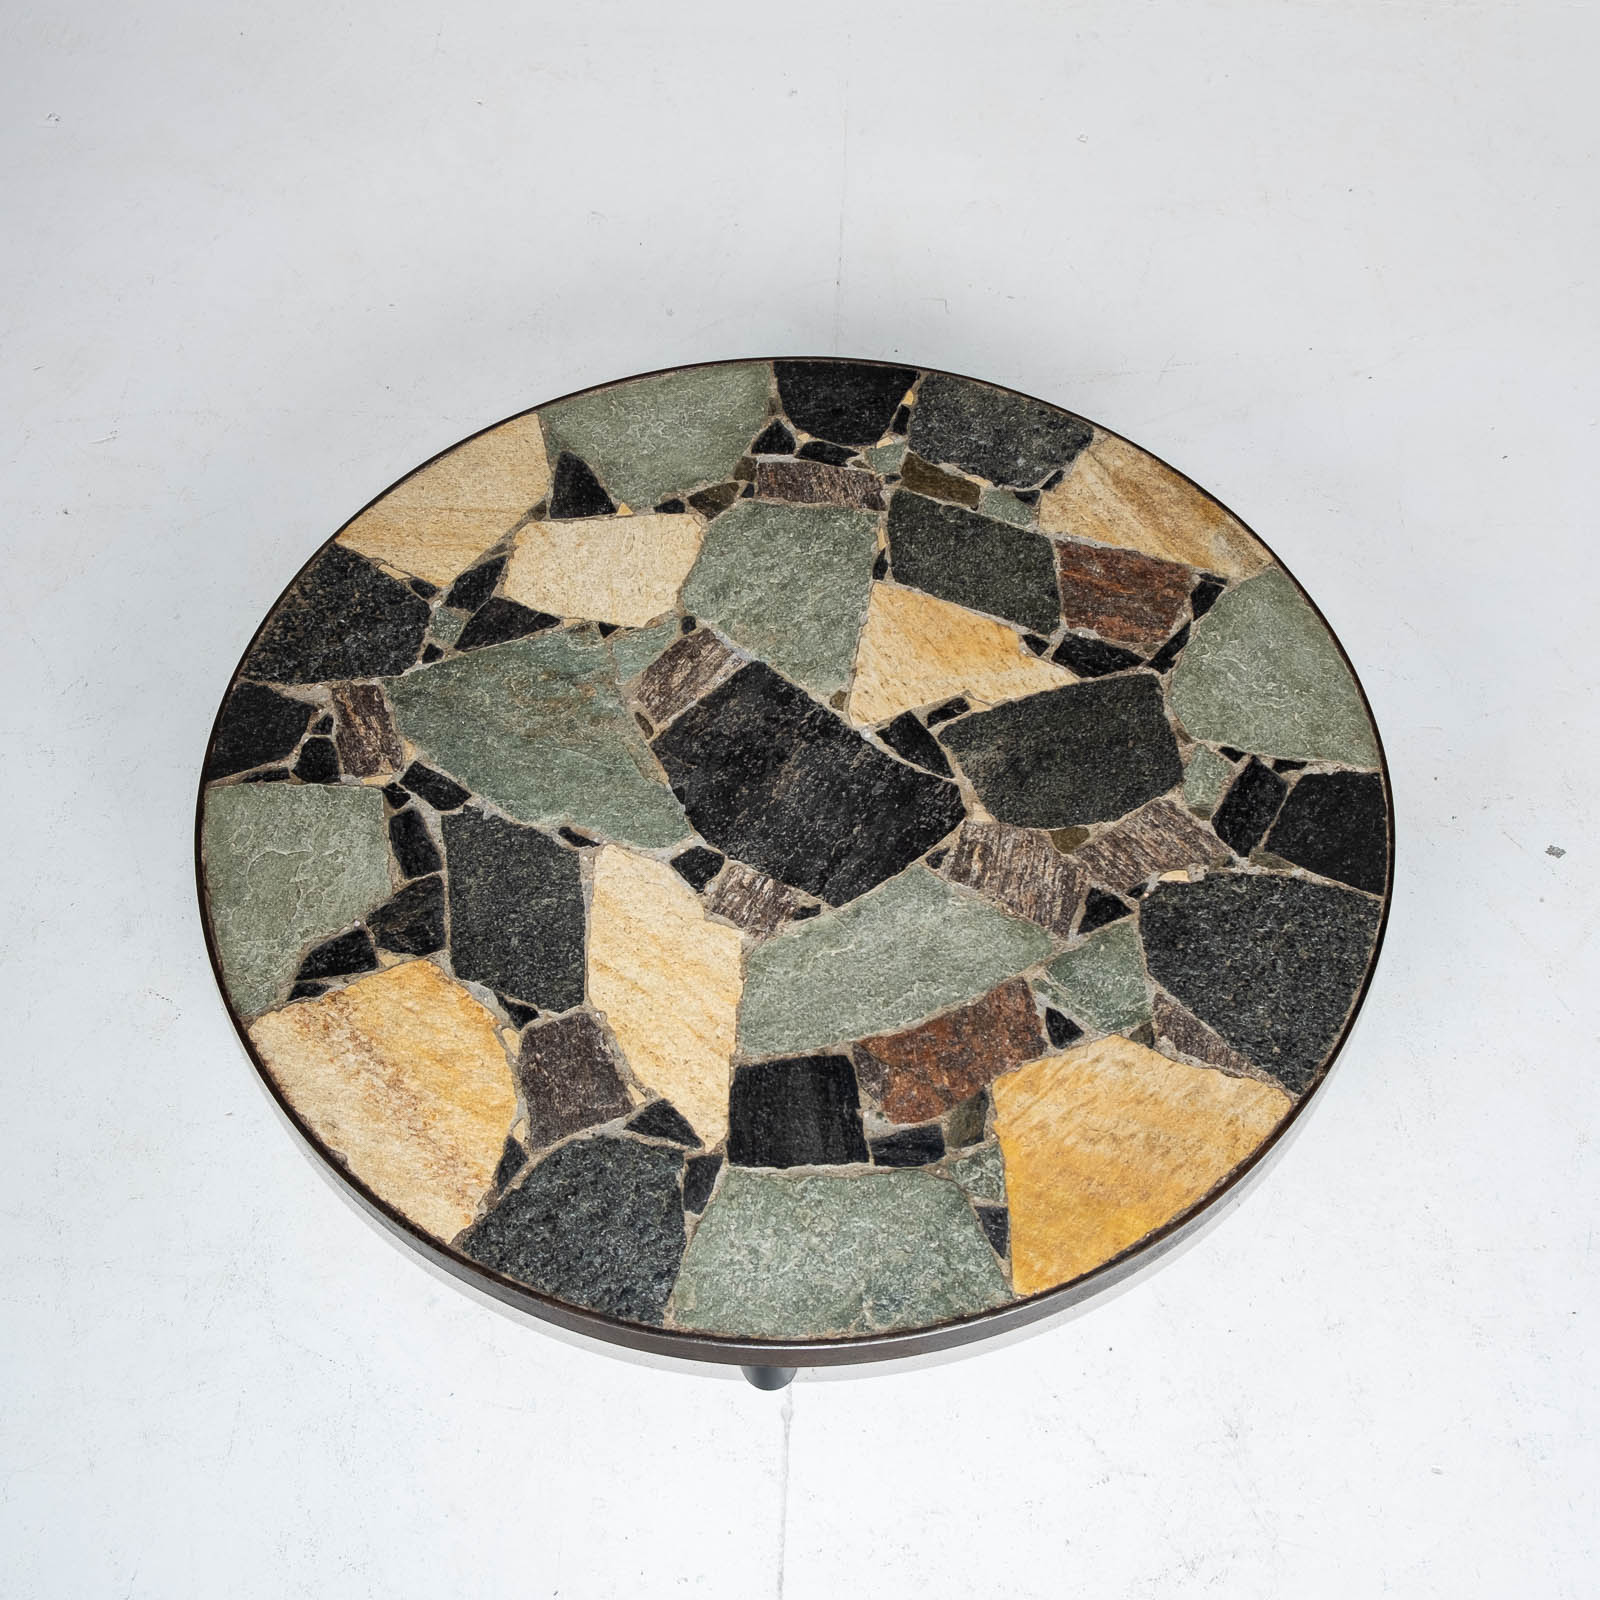 Circular Coffee Table In The Style Of Paul Kingma With Mosaic Slate Top And Metal Edge, 1970s, The Netherlands 00003